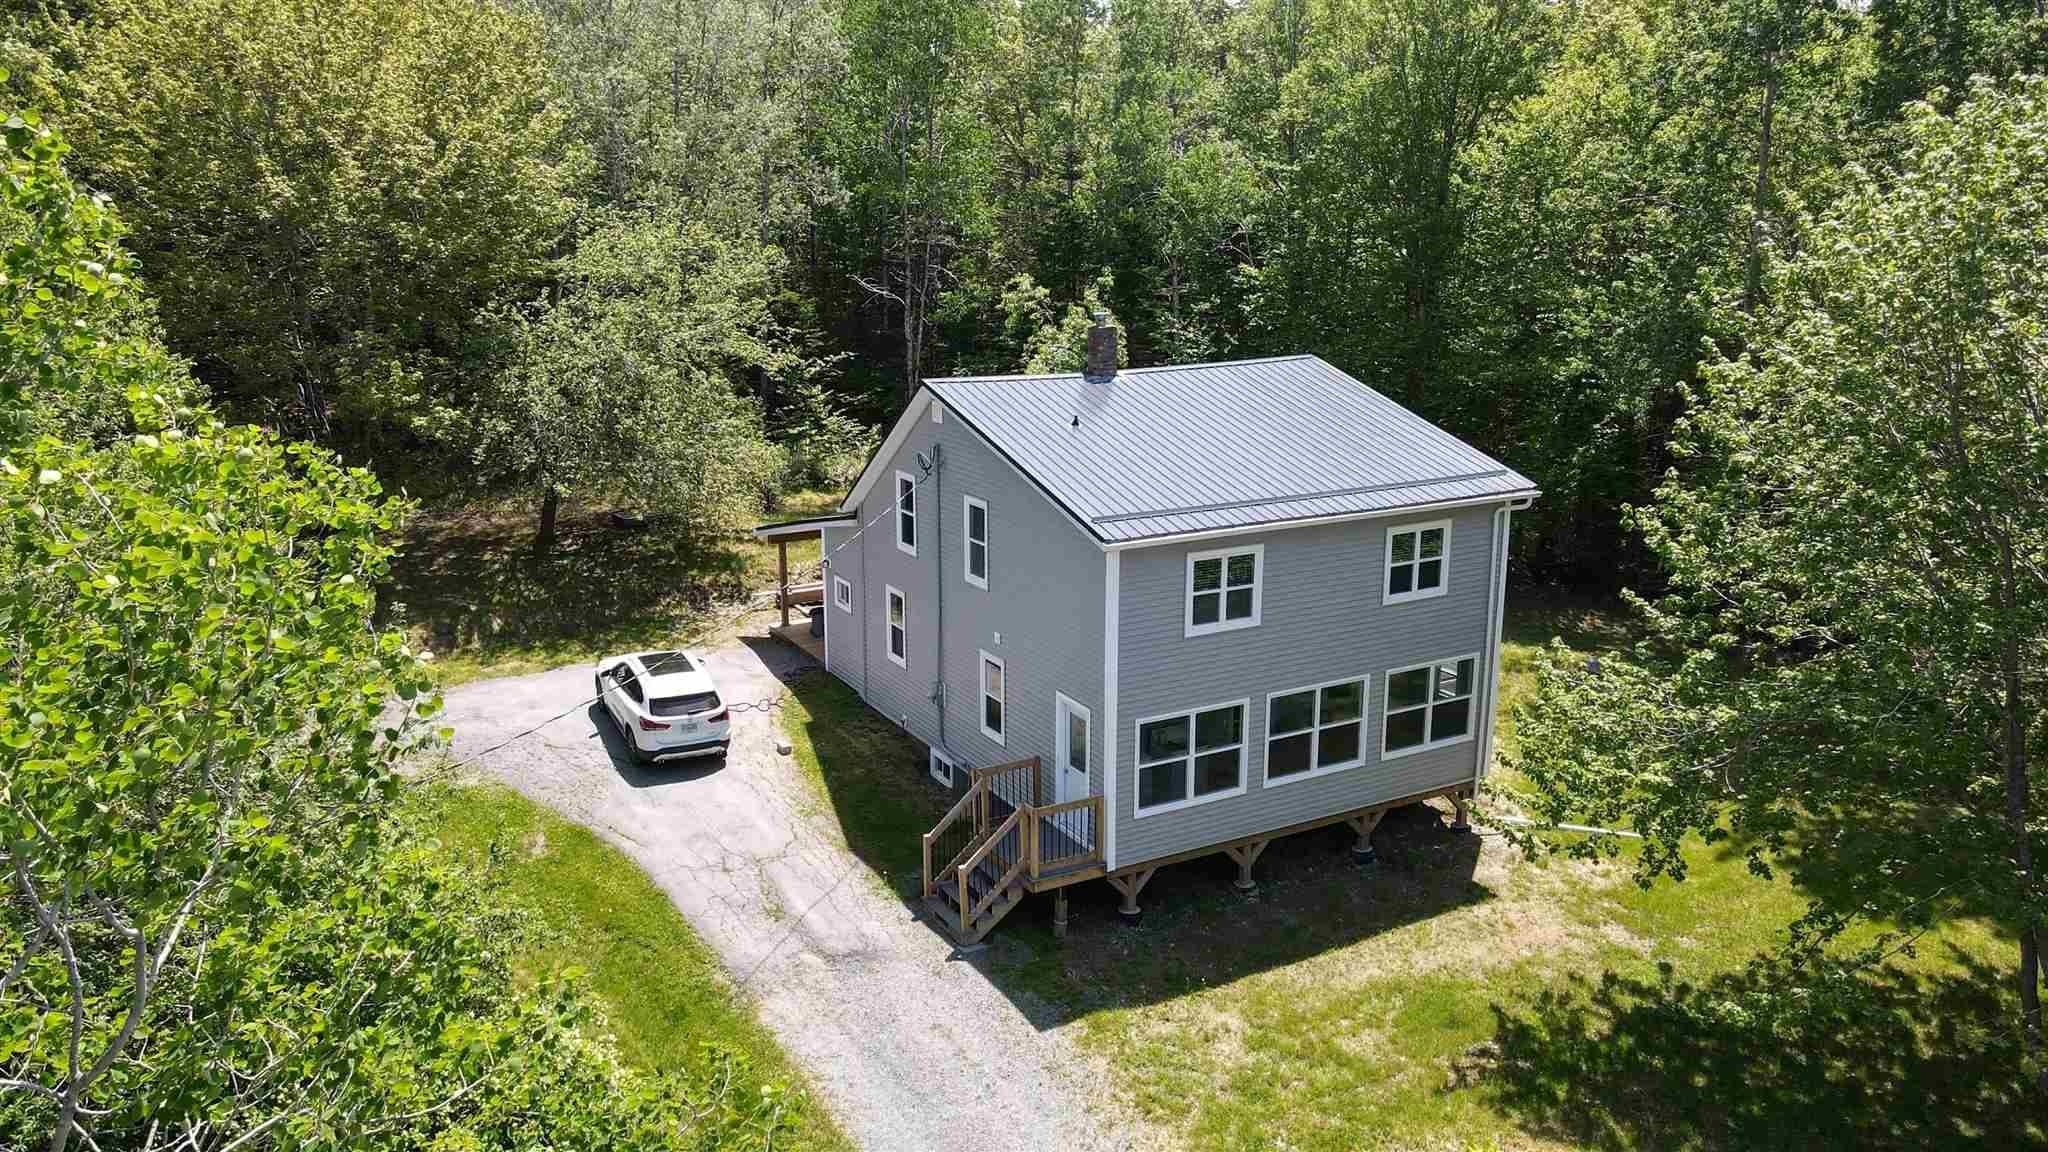 Main Photo: 284 East River Road in Sheet Harbour: 35-Halifax County East Residential for sale (Halifax-Dartmouth)  : MLS®# 202120104